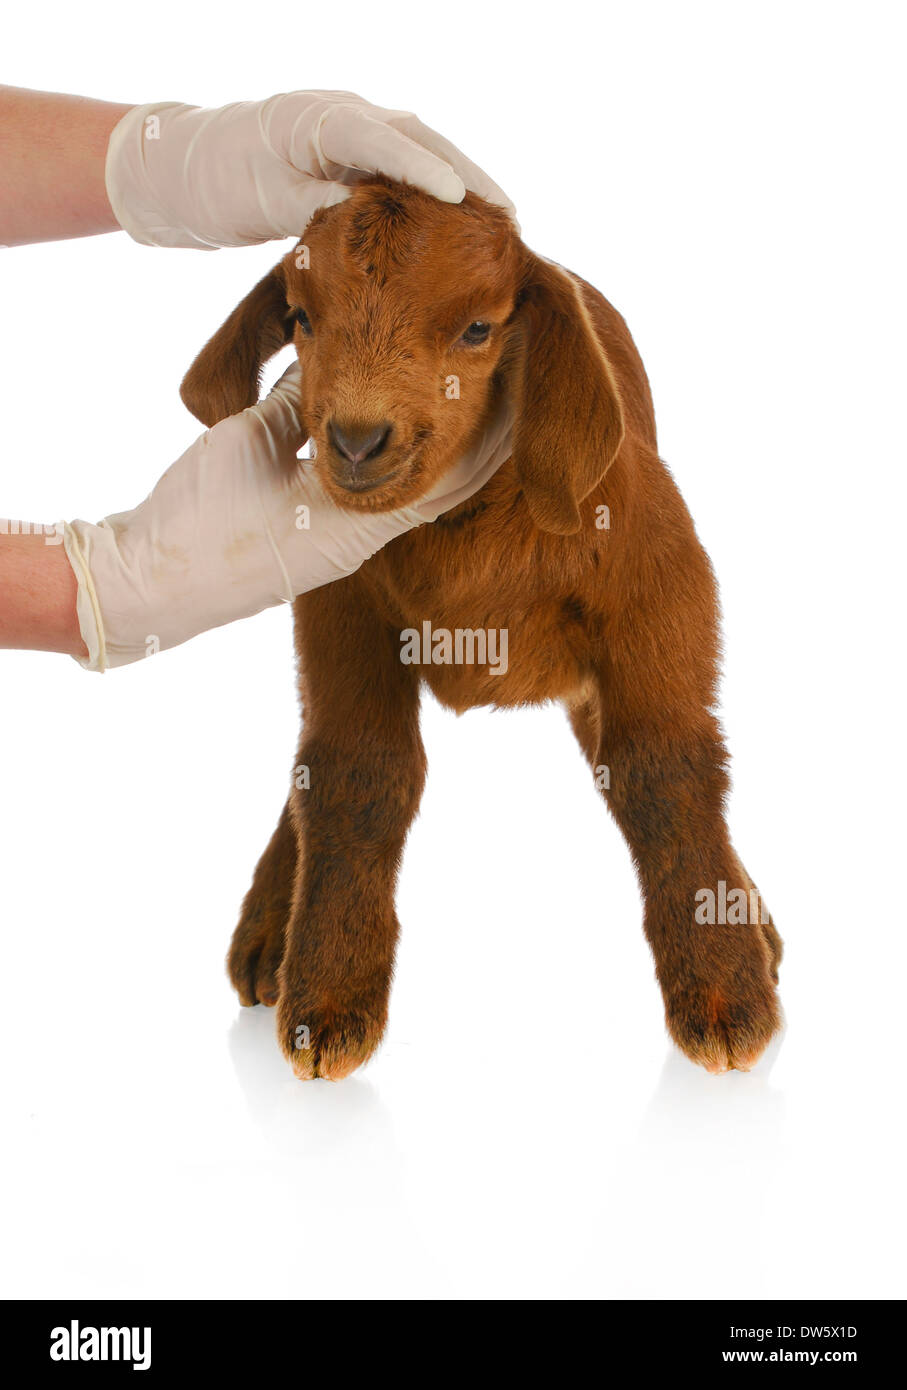 veterinary care - veterinarian examining young goat on white background - Stock Image